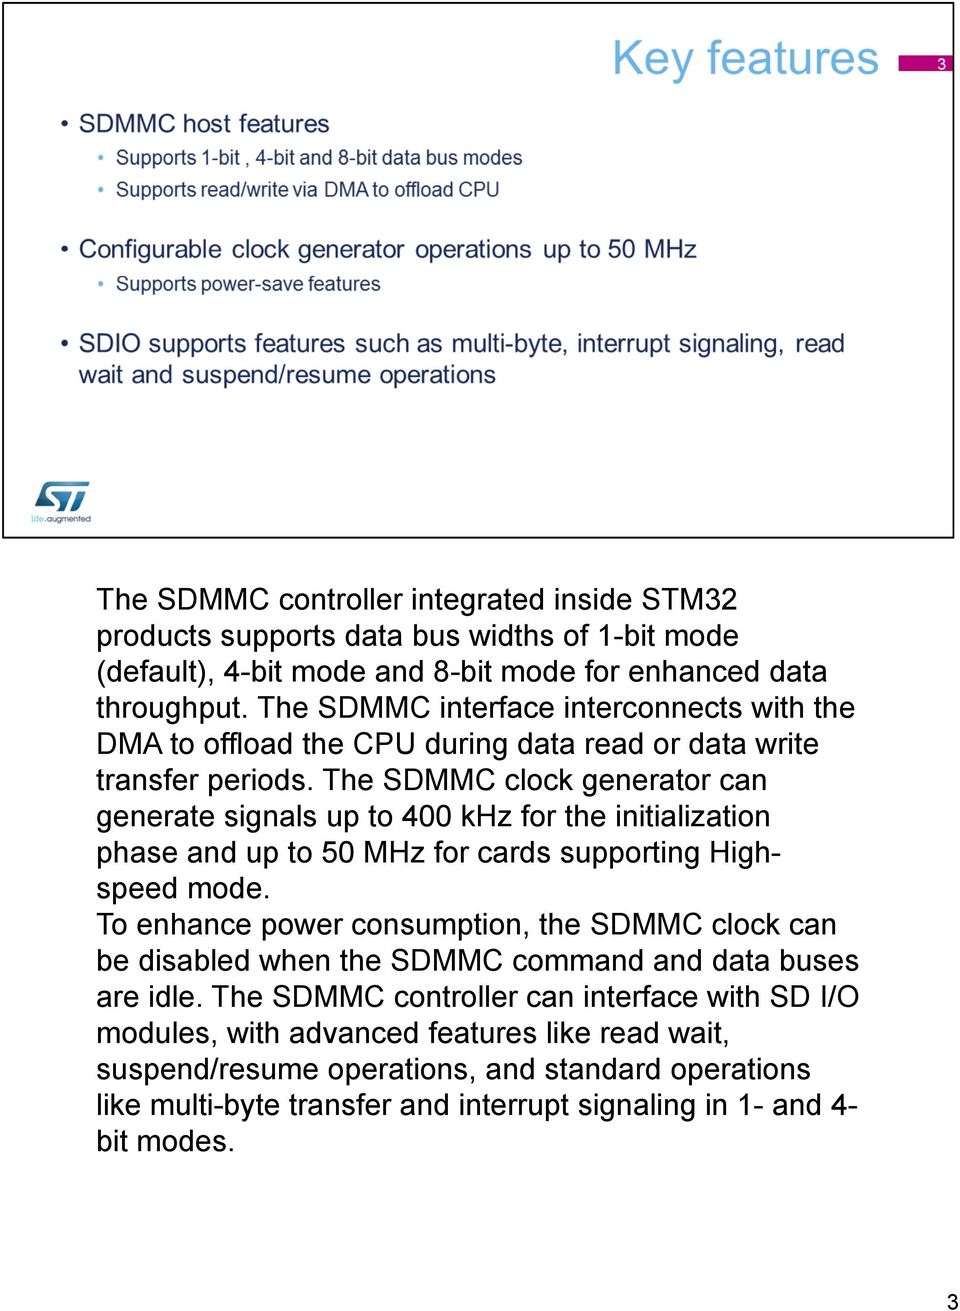 The SDMMC clock generator can generate signals up to 400 khz for the initialization phase and up to 50 MHz for cards supporting Highspeed mode.